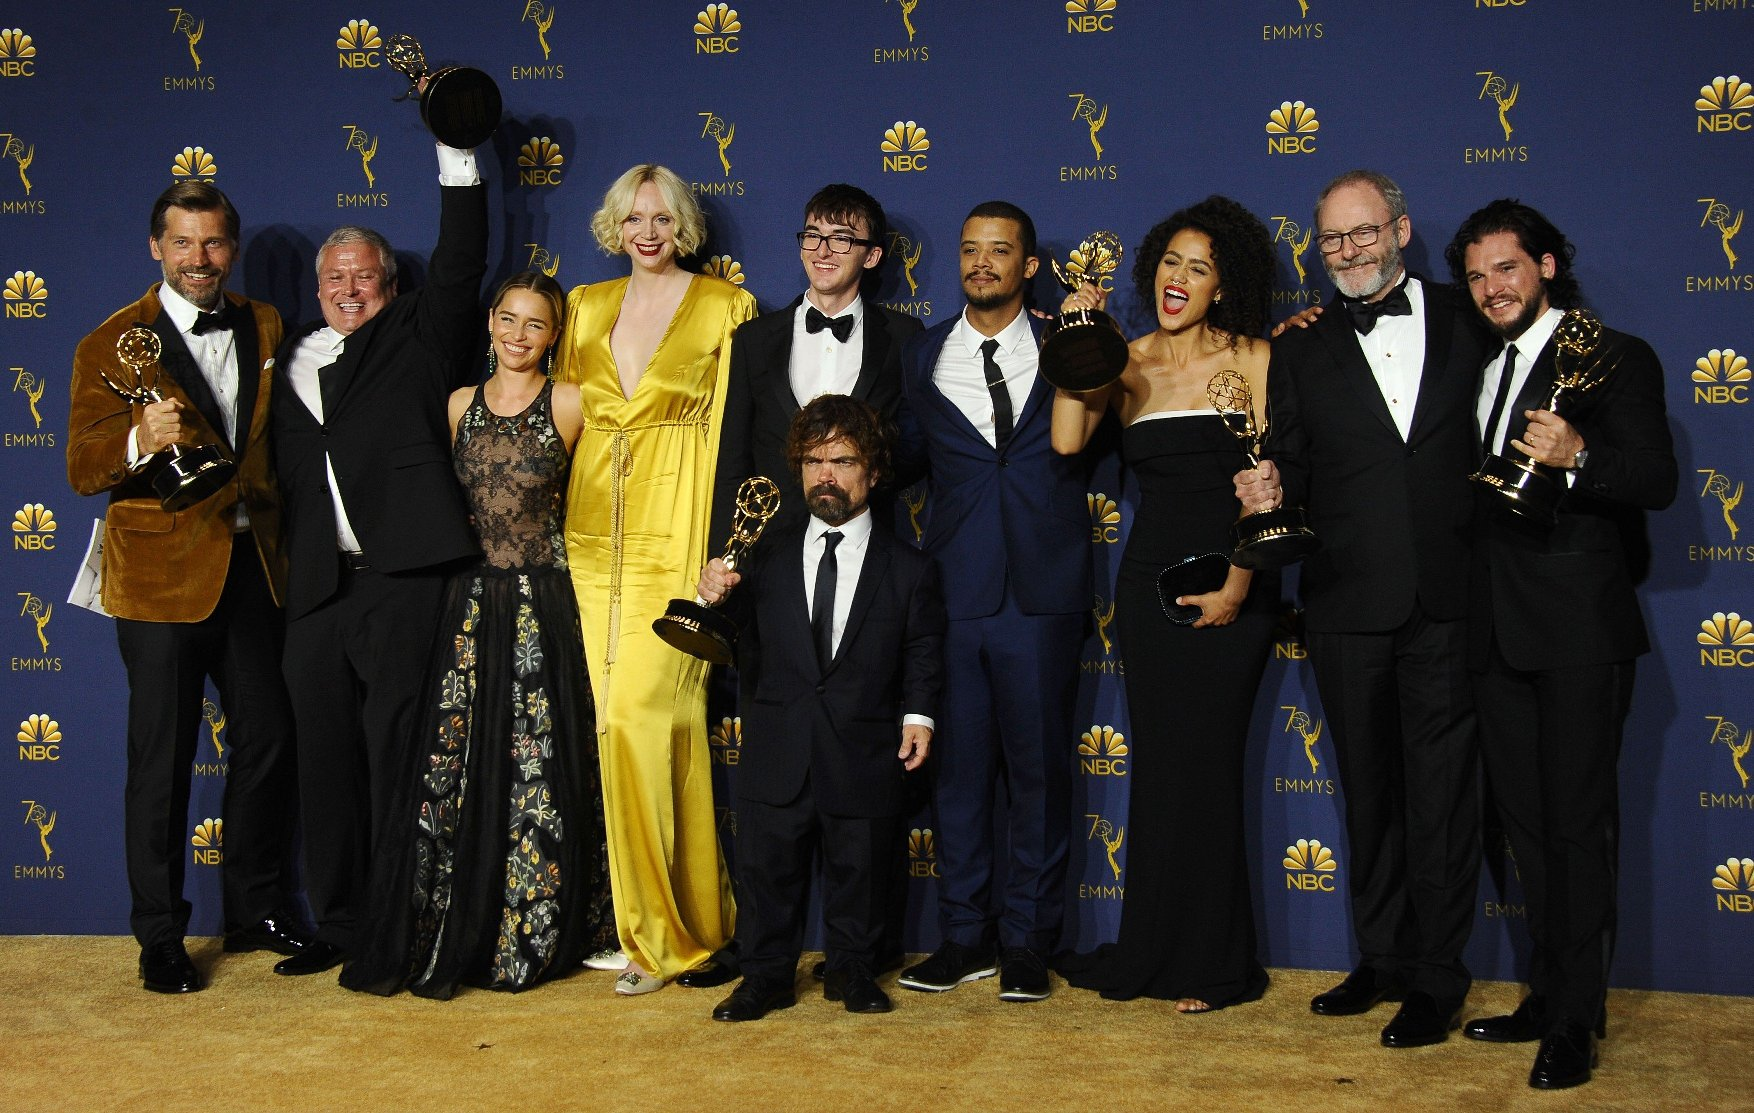 , Los Angeles, CA -20180917 - The 70th Primetime Emmy Awards Press Room, at Microsoft Theater  -PICTURED: Game Of Thrones Cast -, Image: 387174764, License: Rights-managed, Restrictions: , Model Release: no, Credit line: Profimedia, INSTAR Images